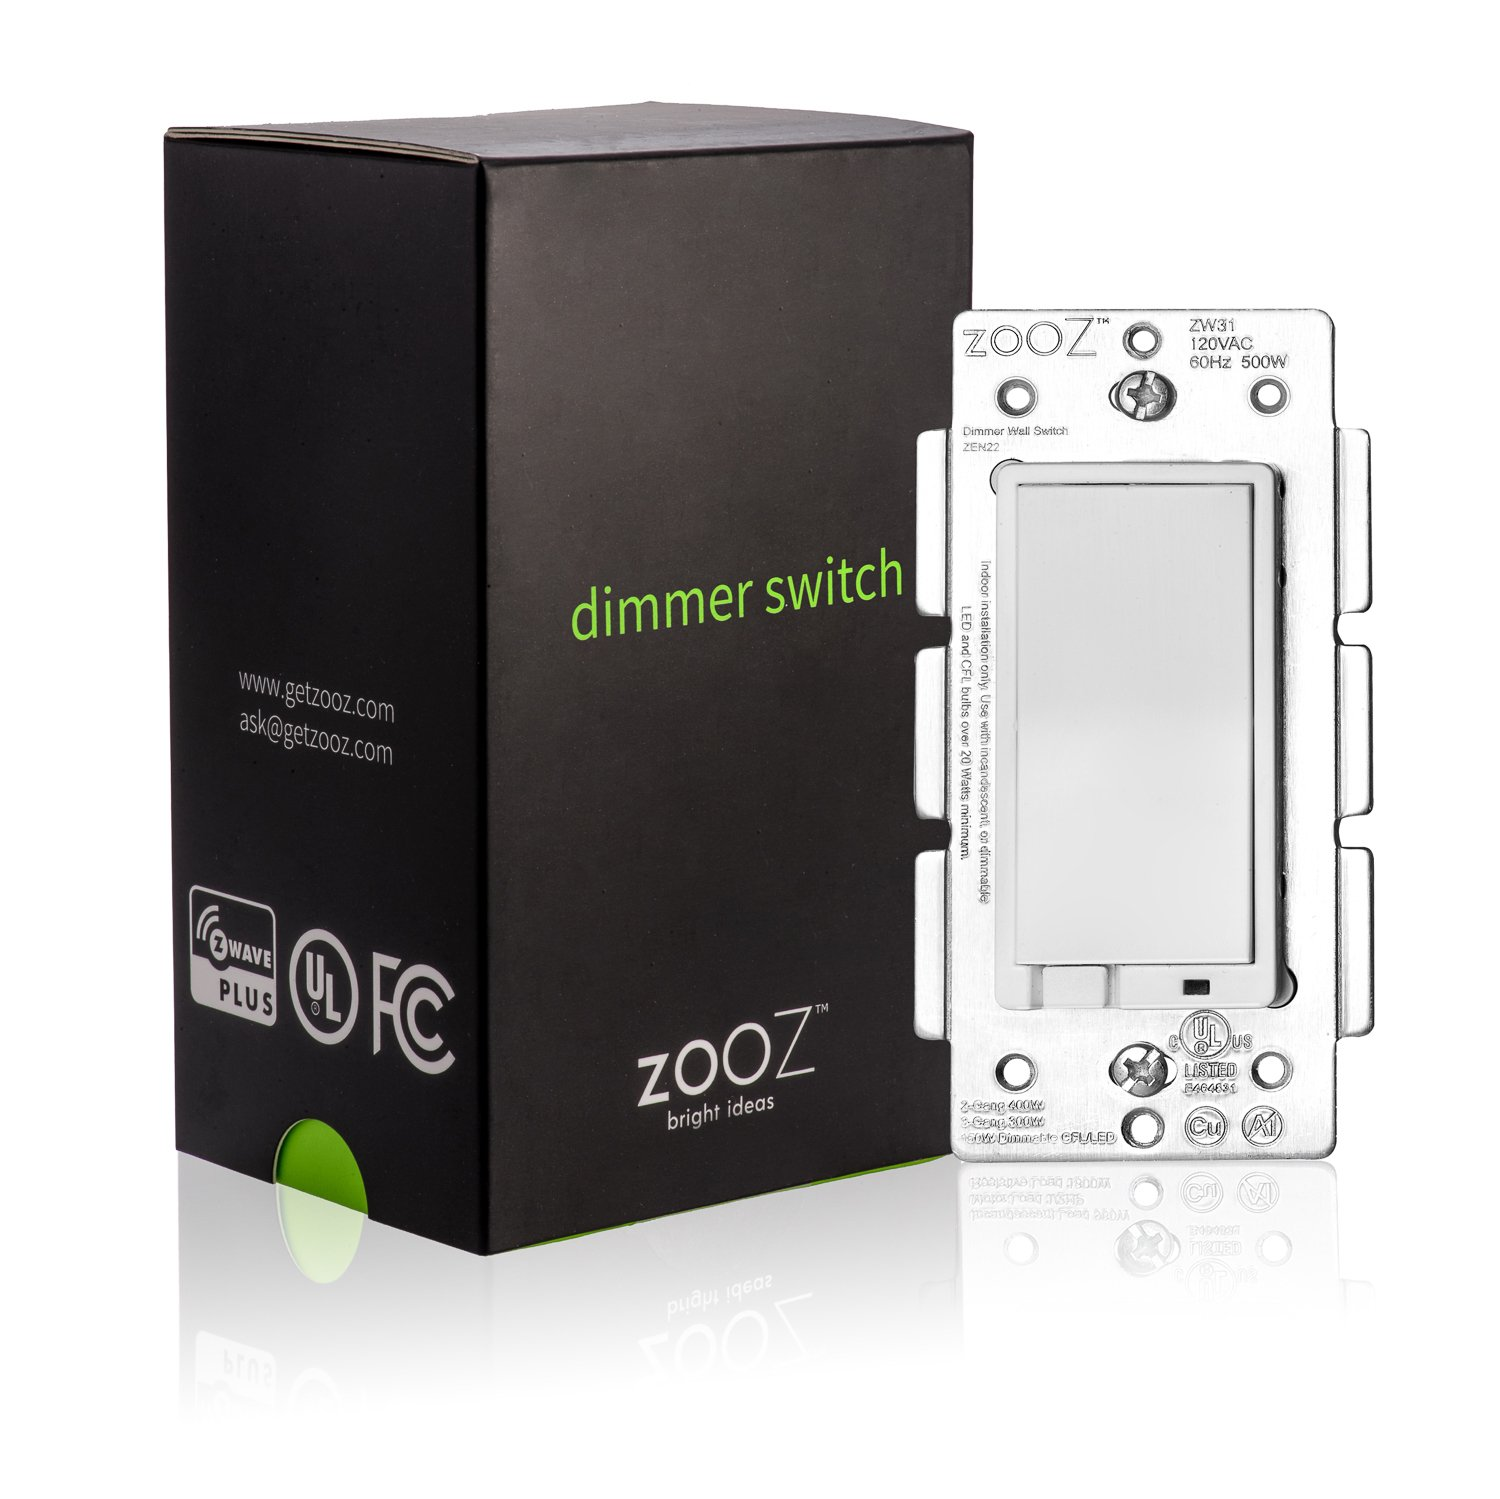 Zooz Z-Wave Plus Wall Dimmer Switch ZEN22 (White) VER. 2.0, Works with Existing Regular 3-Way Switch